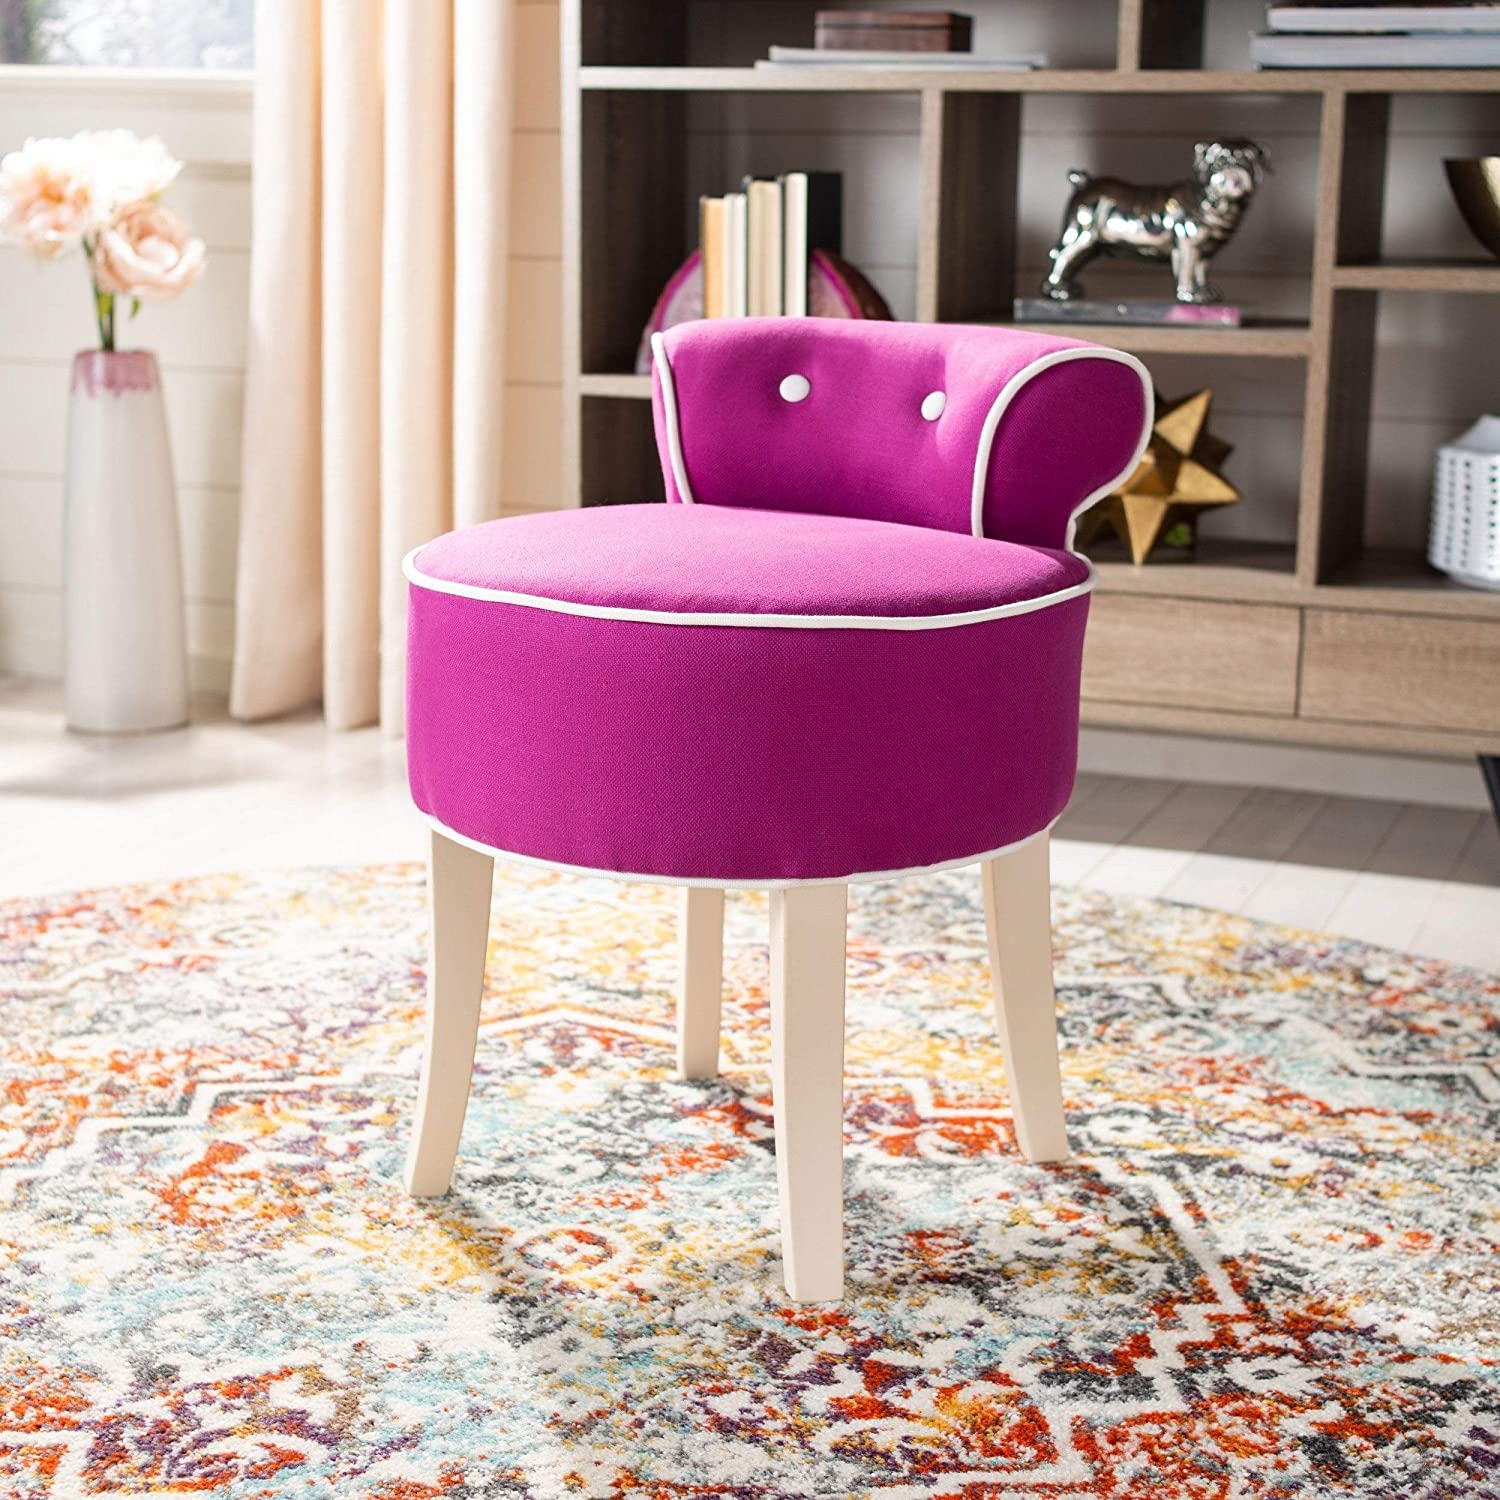 Fuchsia Vanity Stool Purple Solid French Country Shab Chic Cotton Upholstered Wood